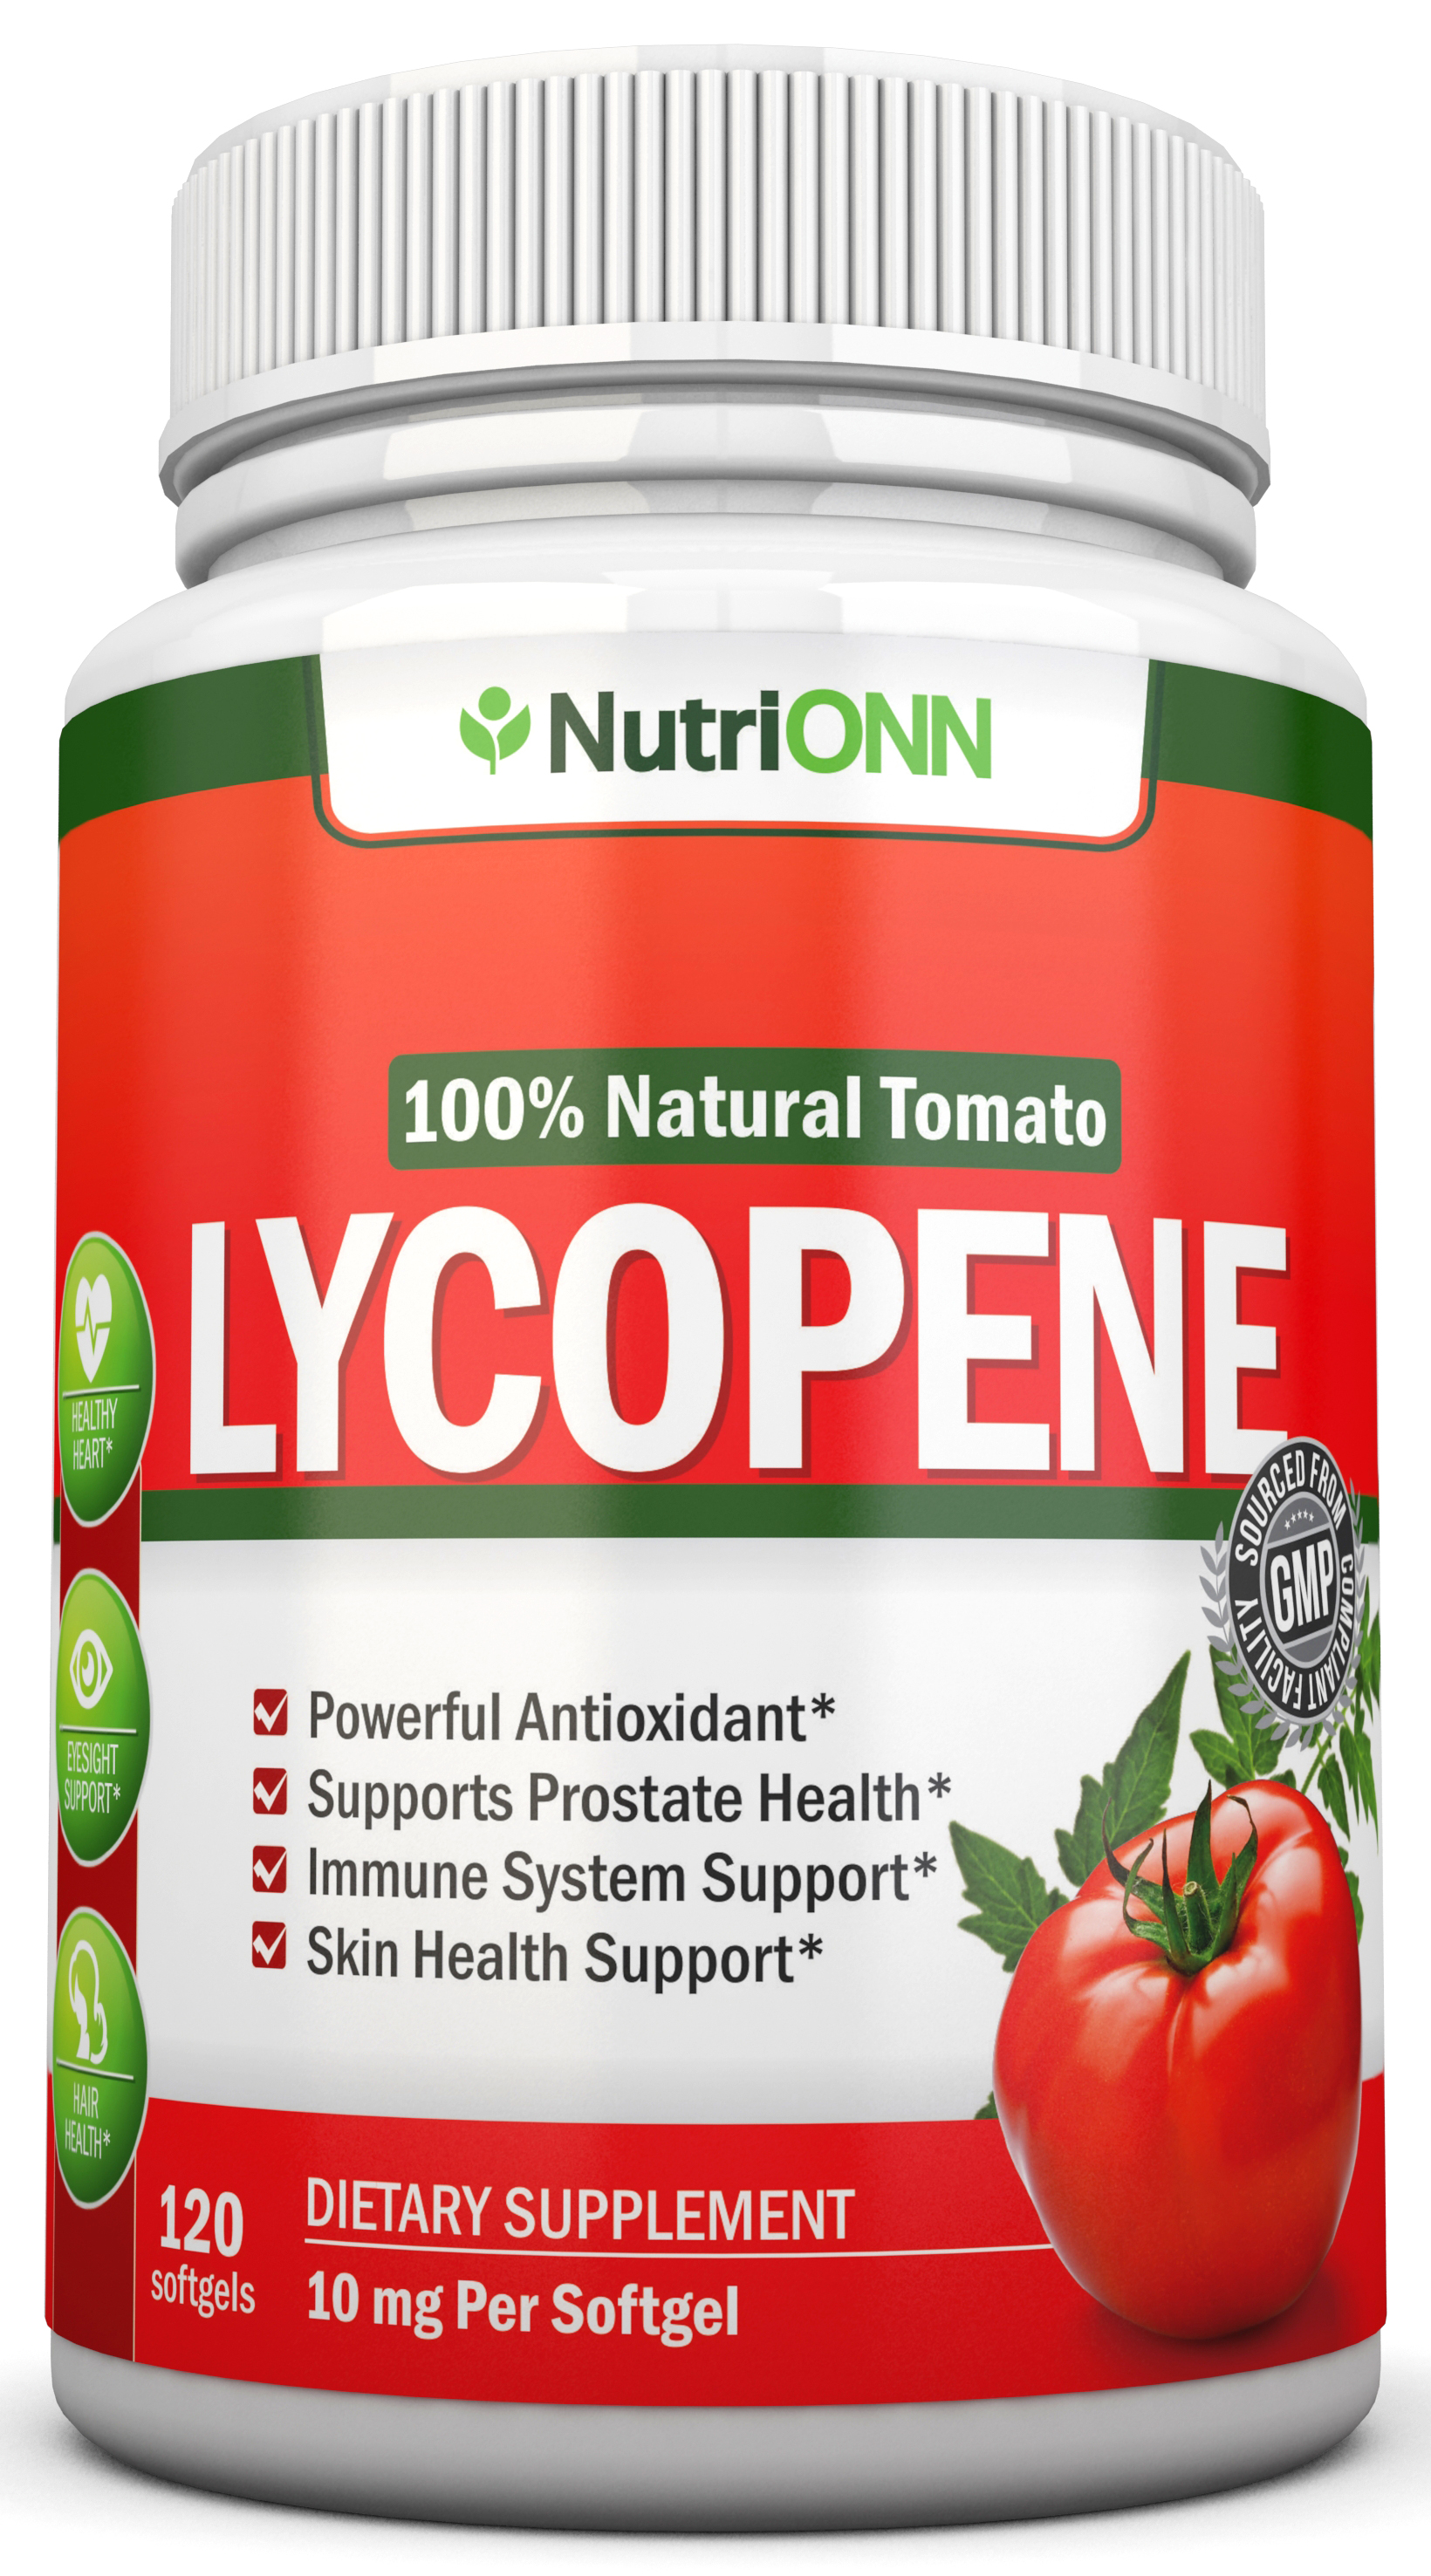 where is lycopene found